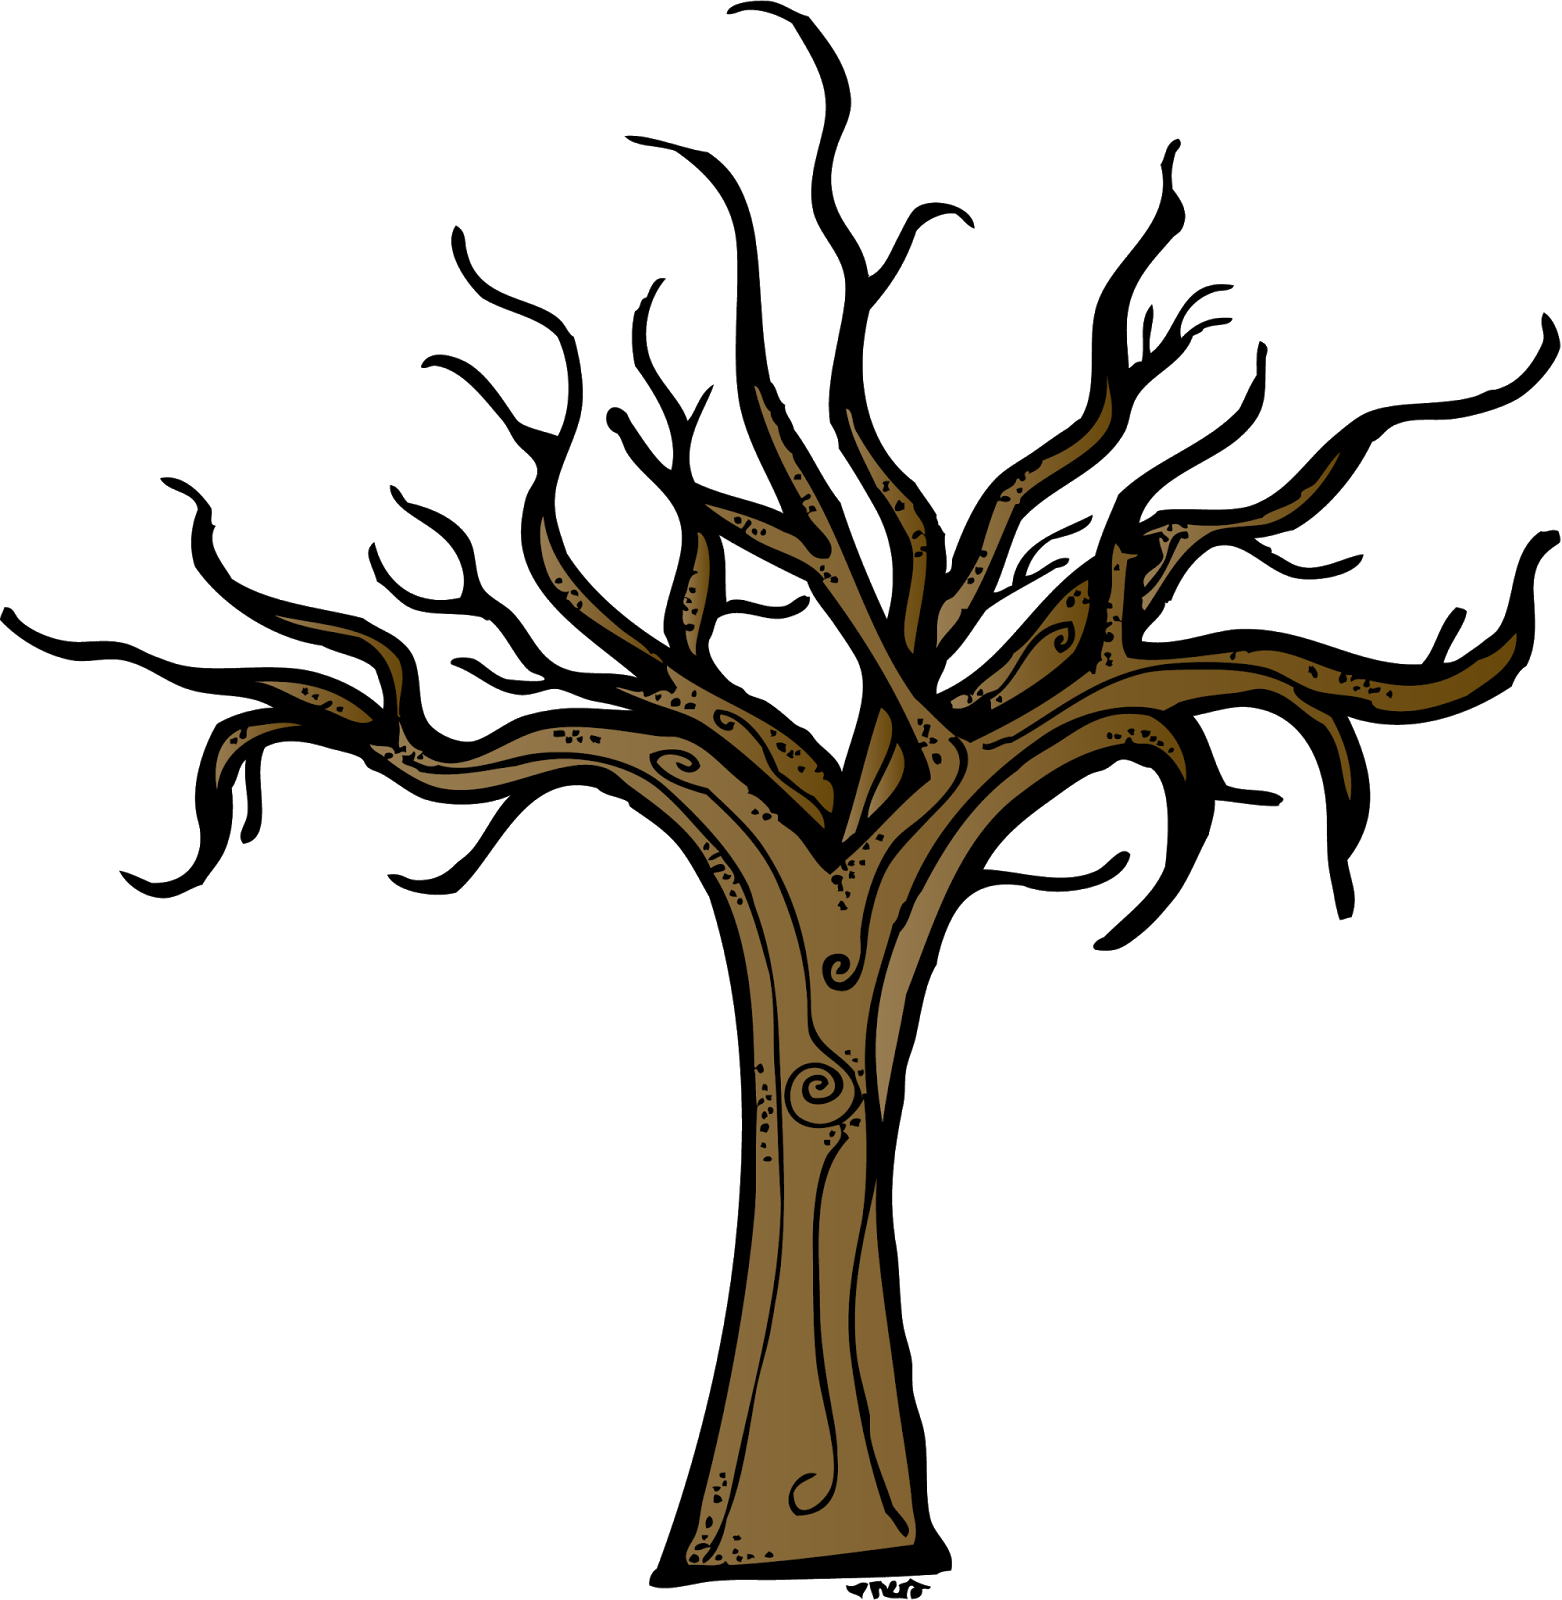 jpg library stock Trunk dry tree pencil. Bare clipart